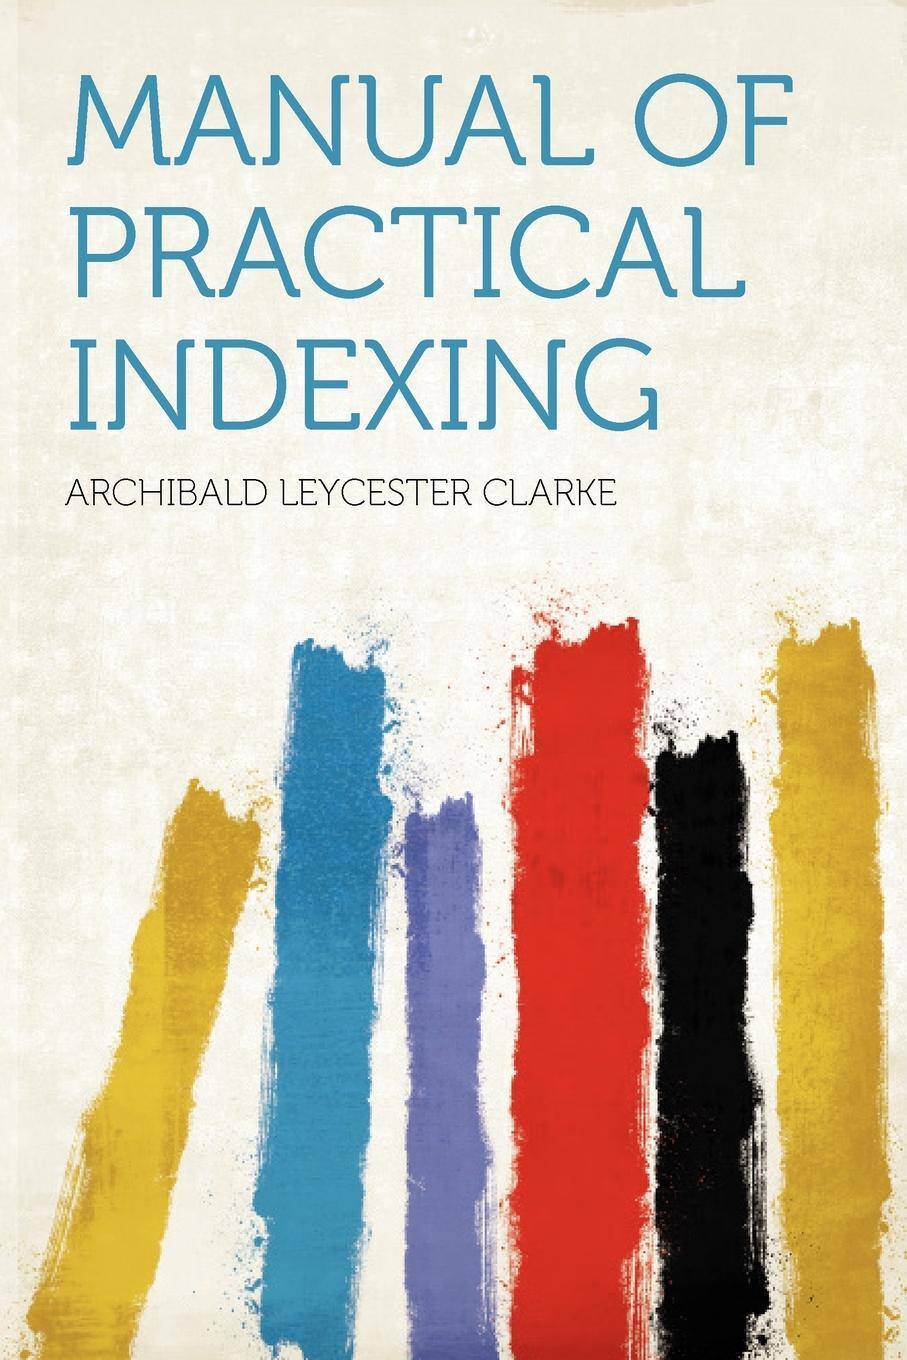 Manual of Practical Indexing.